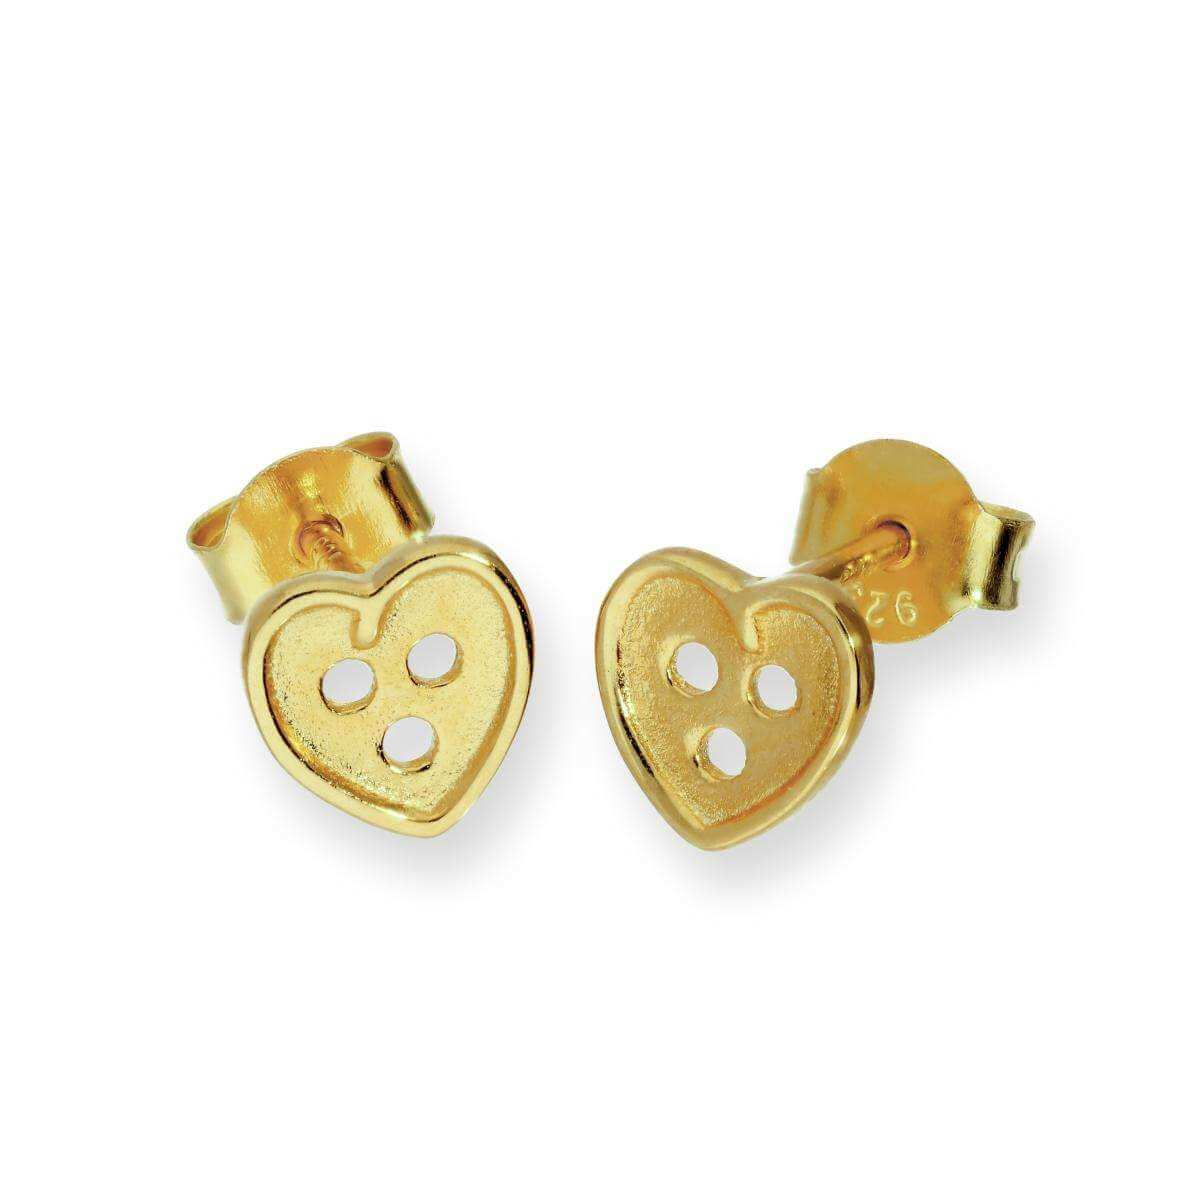 Gold Plated Sterling Silver Heart Shaped Button Stud Earrings